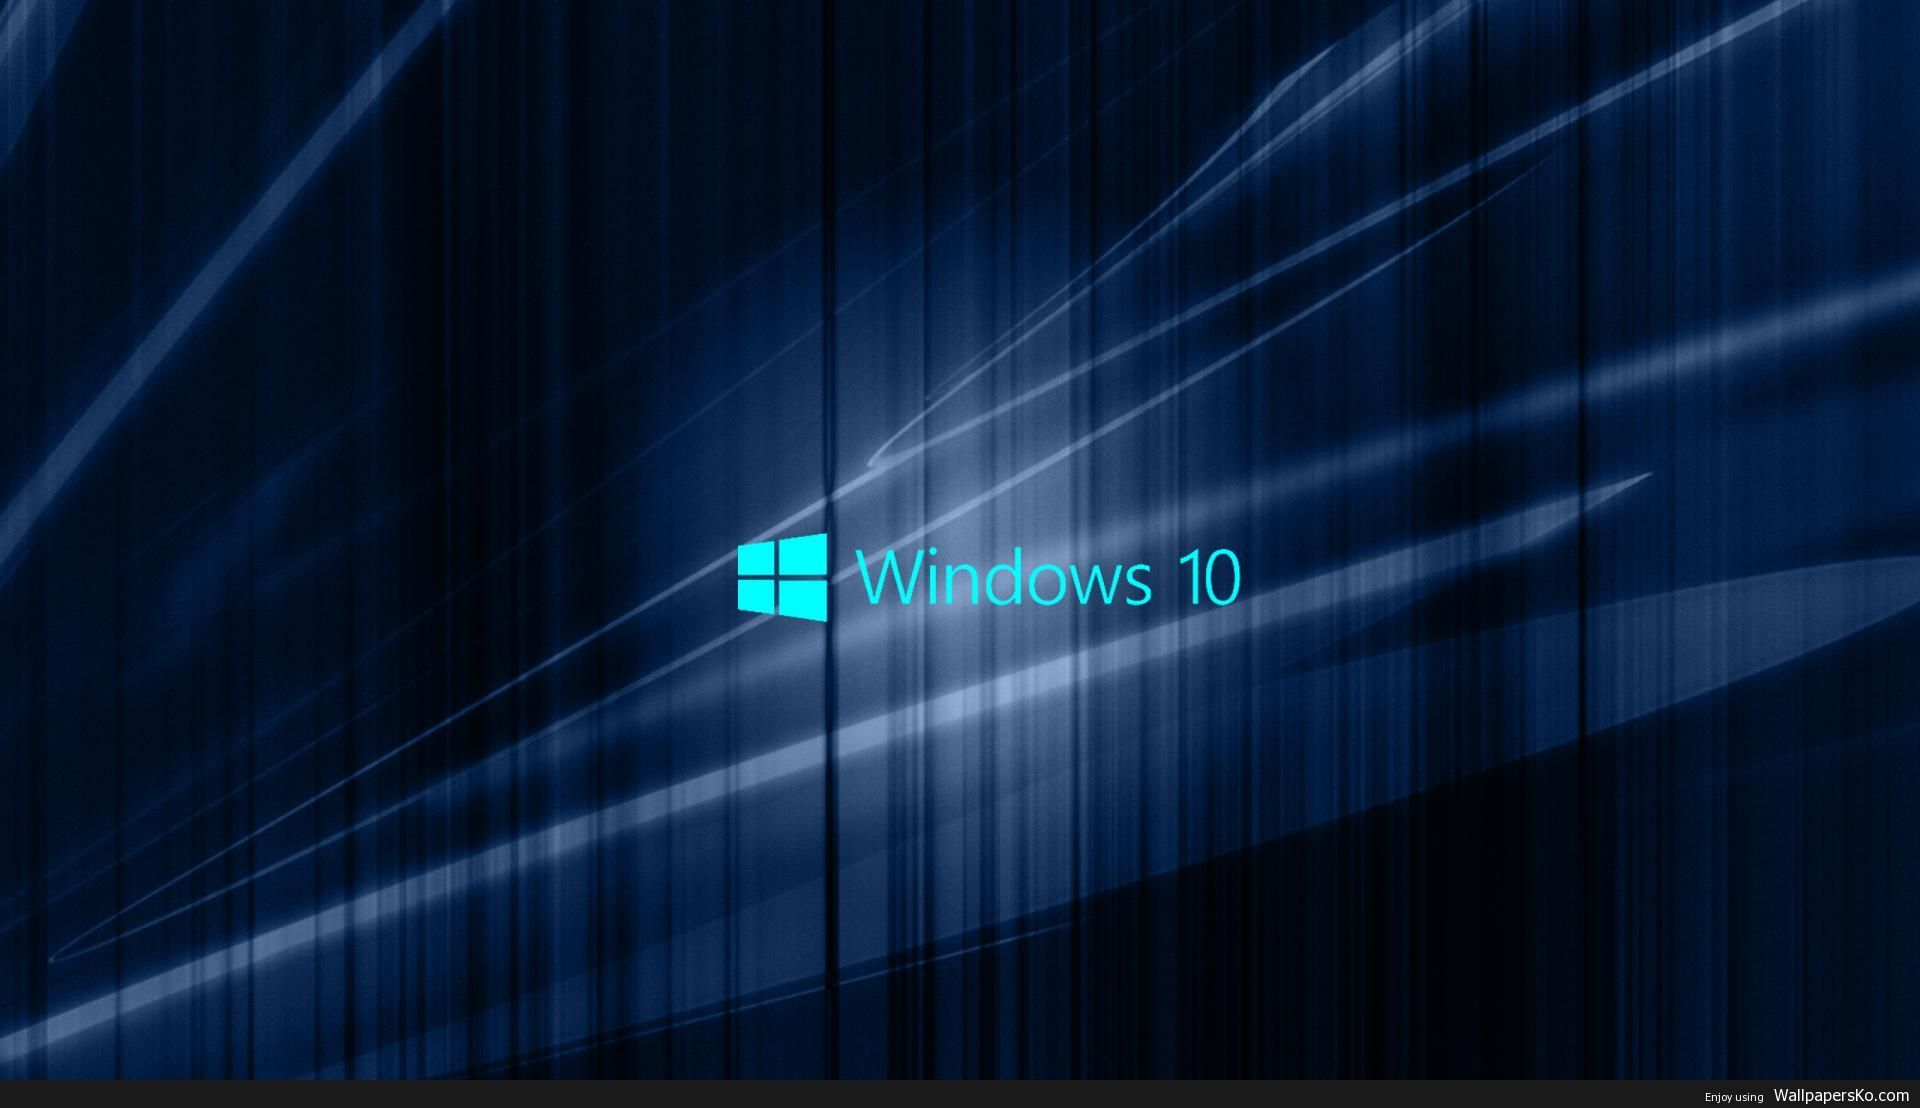 Windows 10 Pro Wallpaper Http Wallpapersko Com Windows 10 Pro Wallpaper Html Hd Wallp Microsoft Wallpaper Windows 10 Desktop Backgrounds Windows Wallpaper